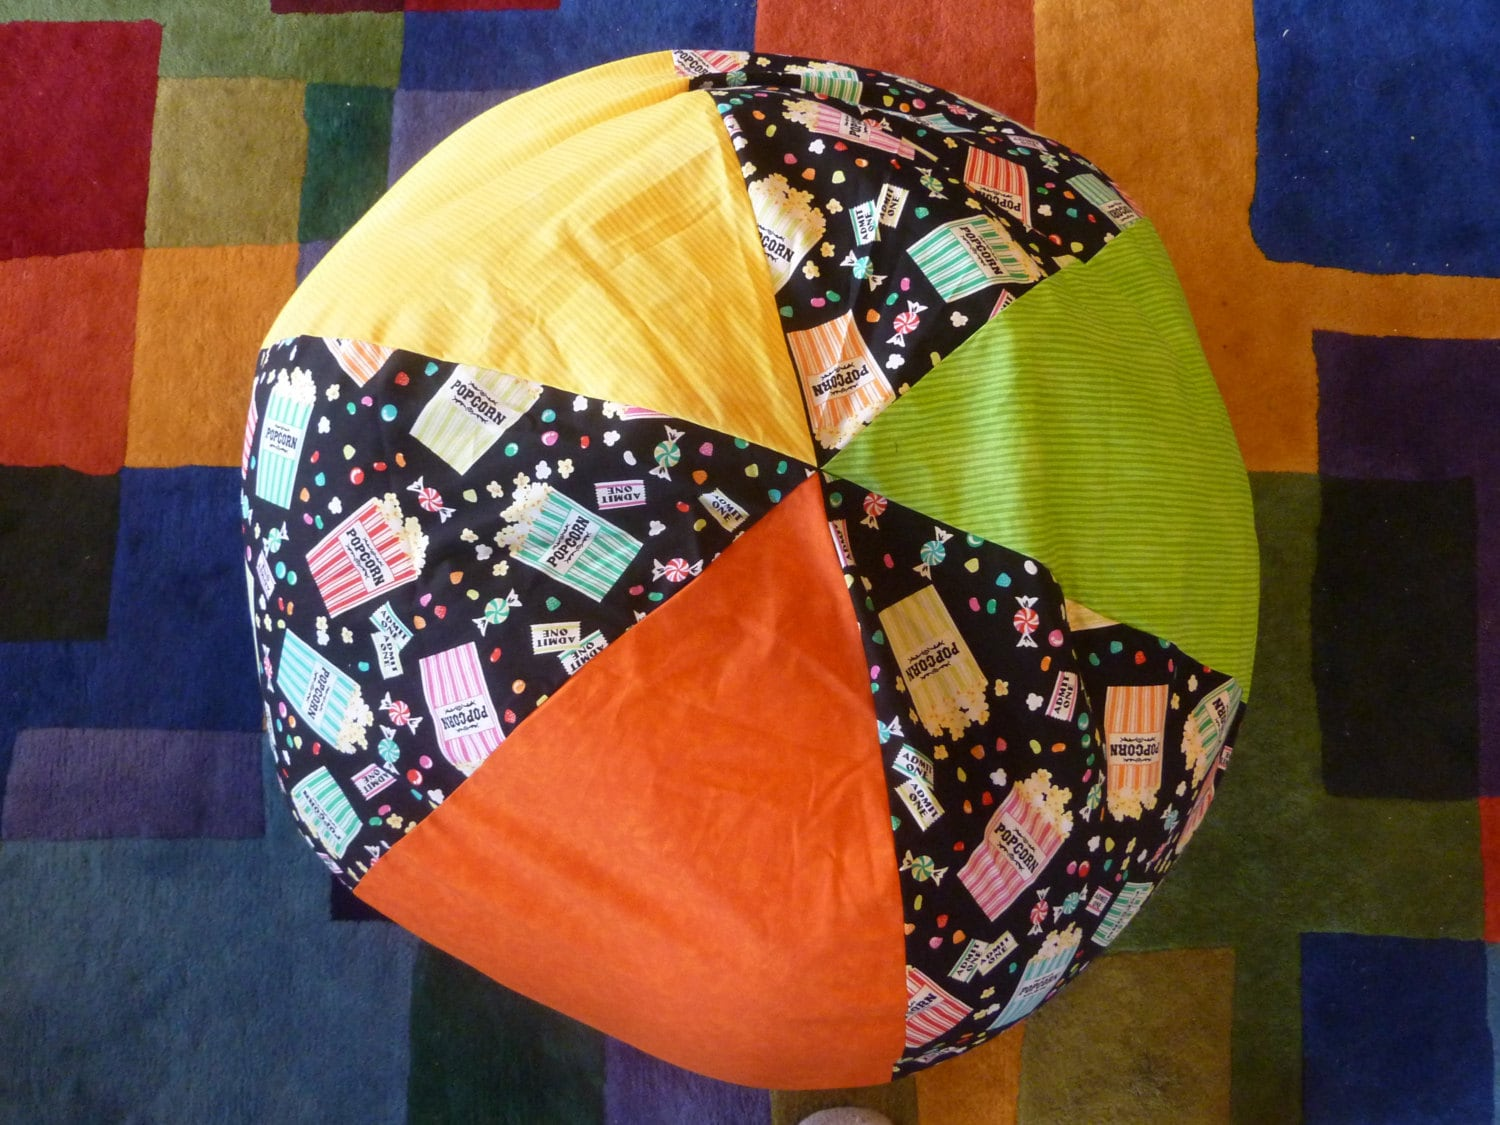 Multi Colored Popcorn And Candy Bean Bag Chair Cover Orange